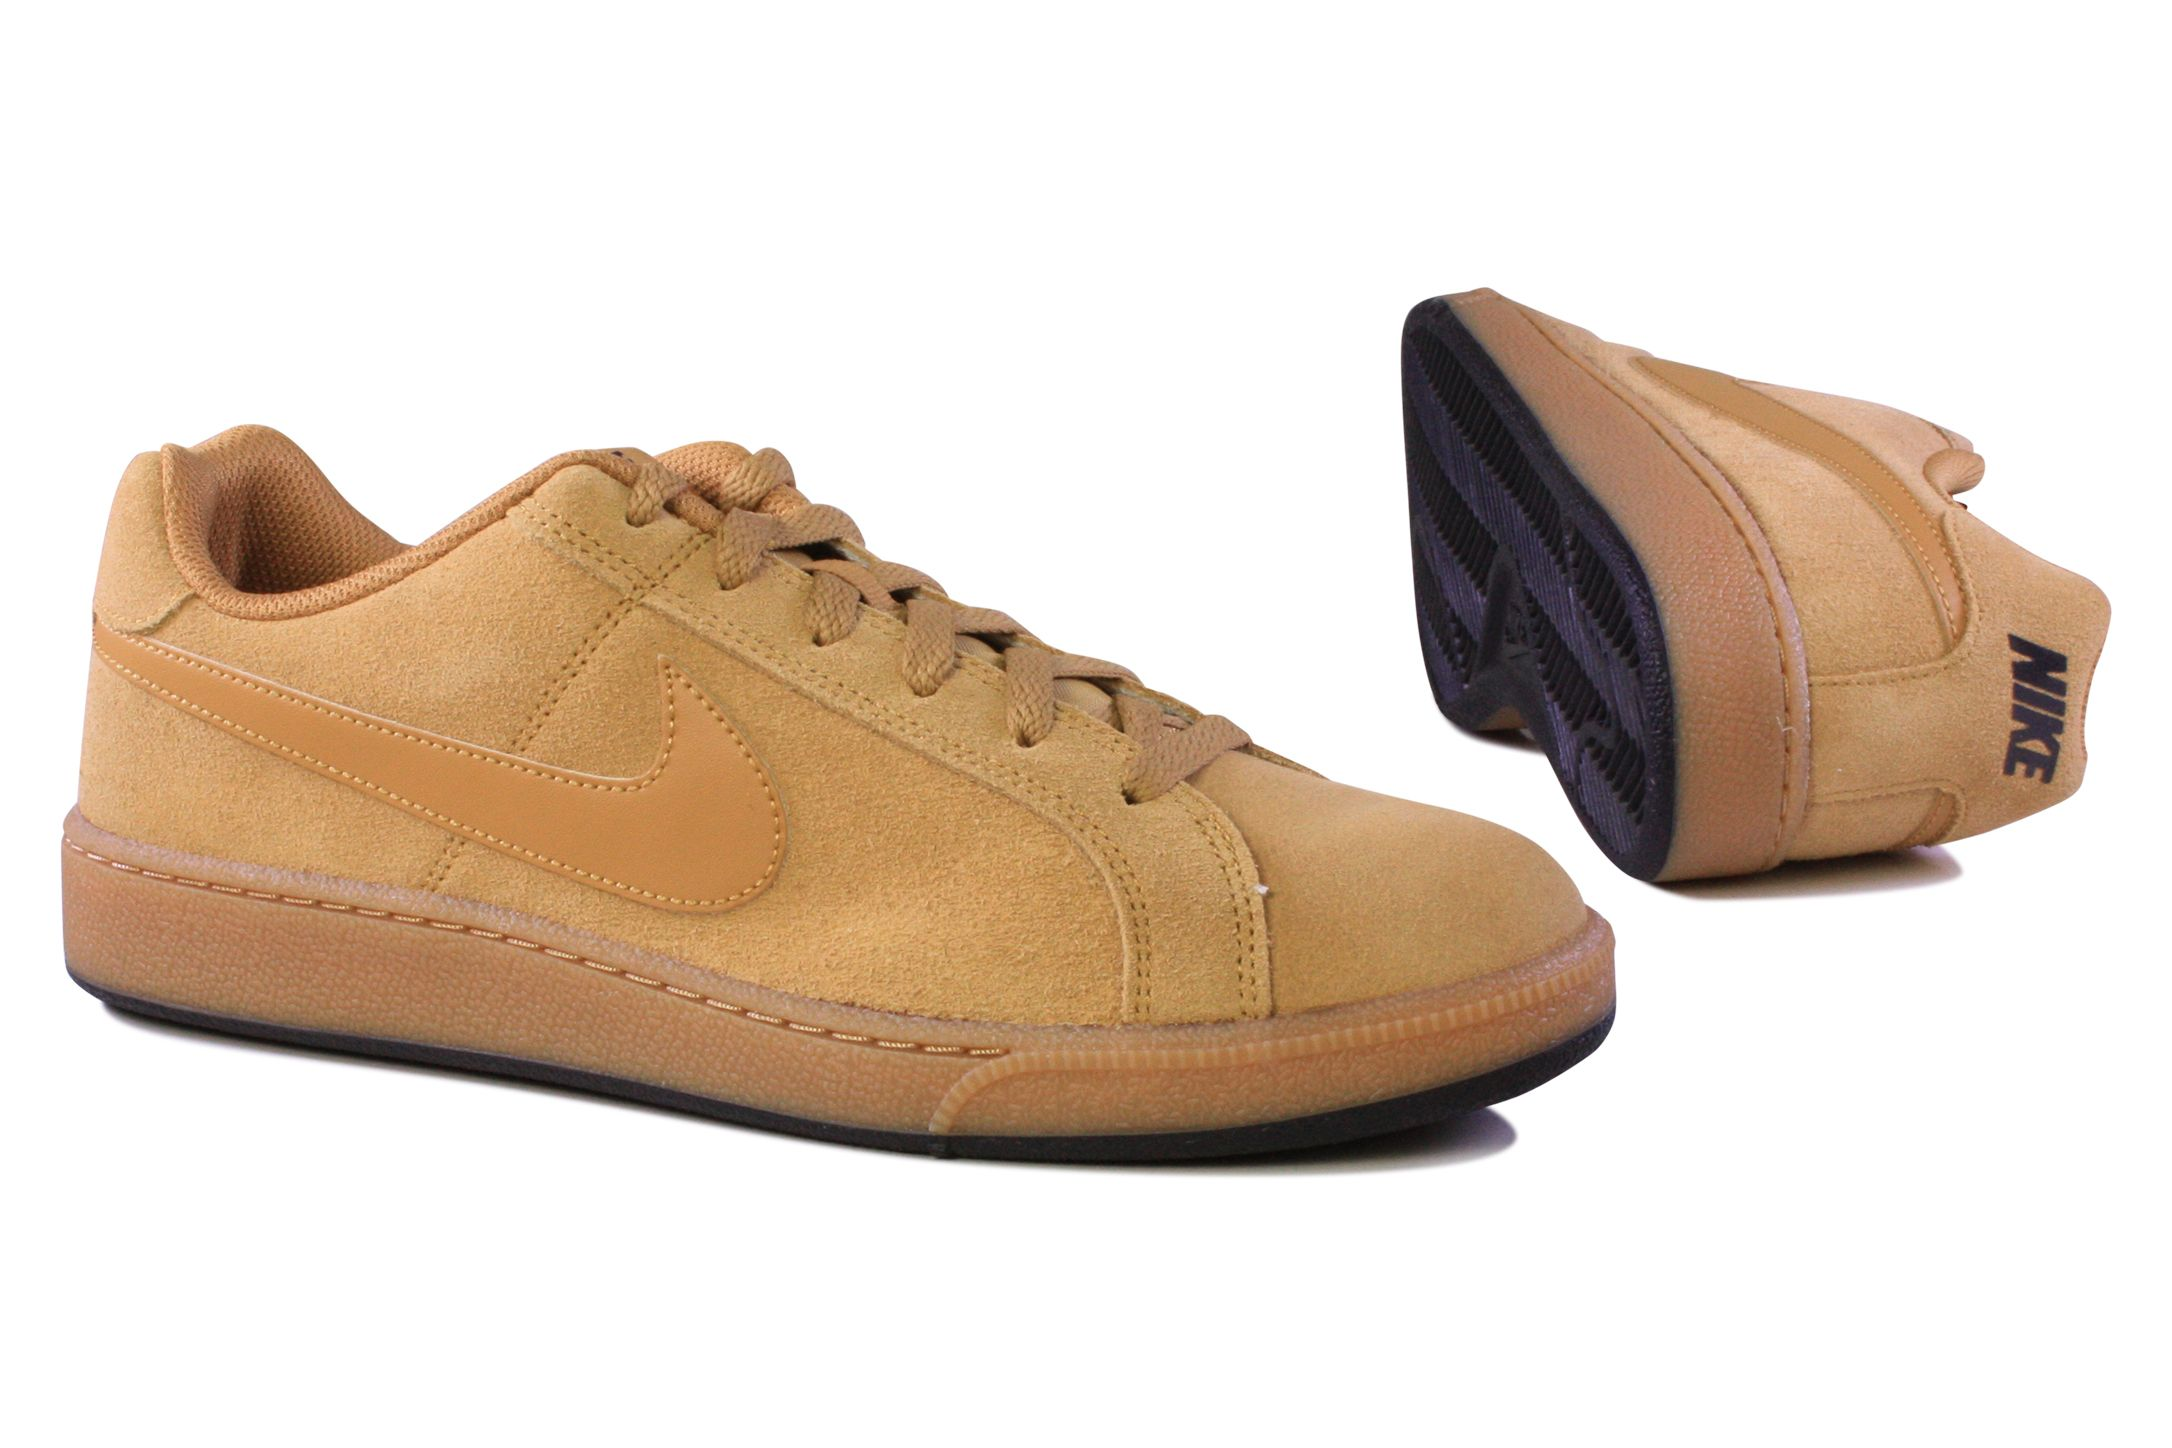 f737fd0c9577 Mens Shoe Centre